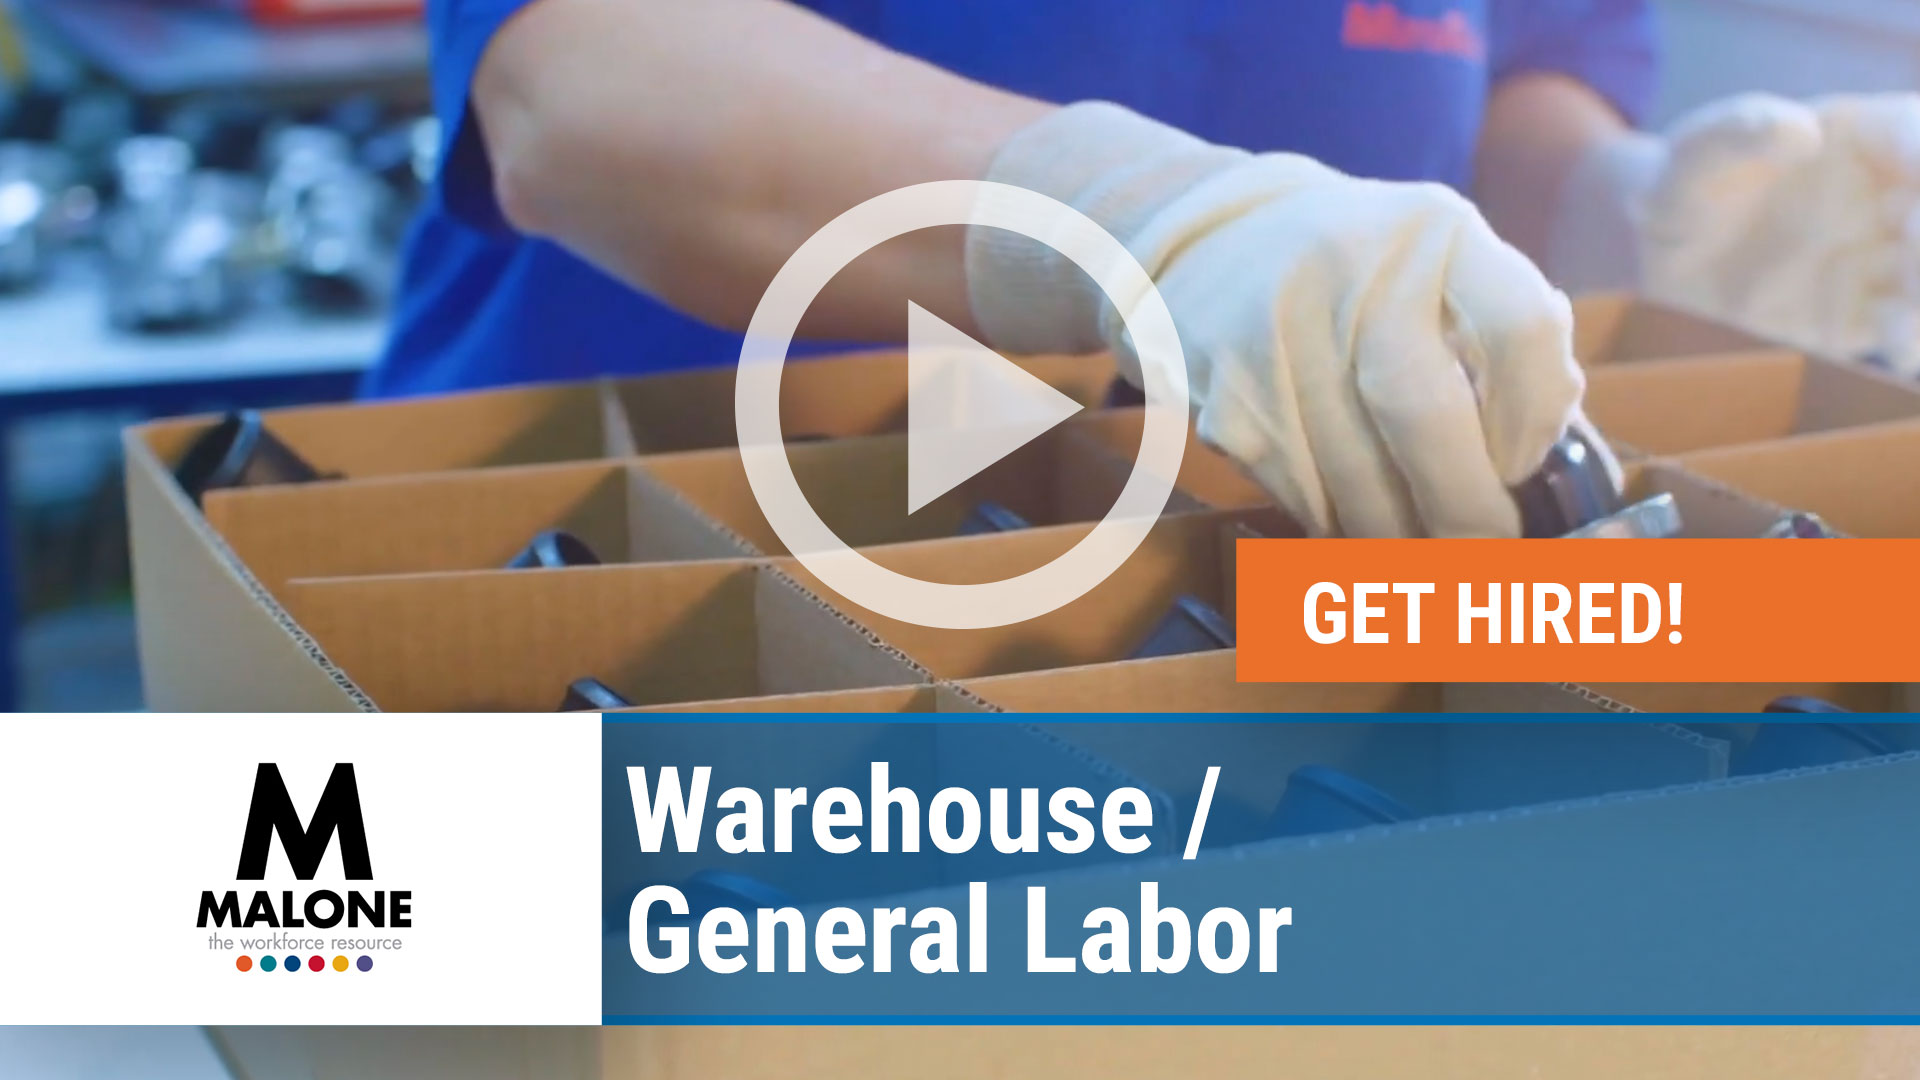 Watch our careers video for available job opening Warehouse - General Labor in Romeoville, Illinois